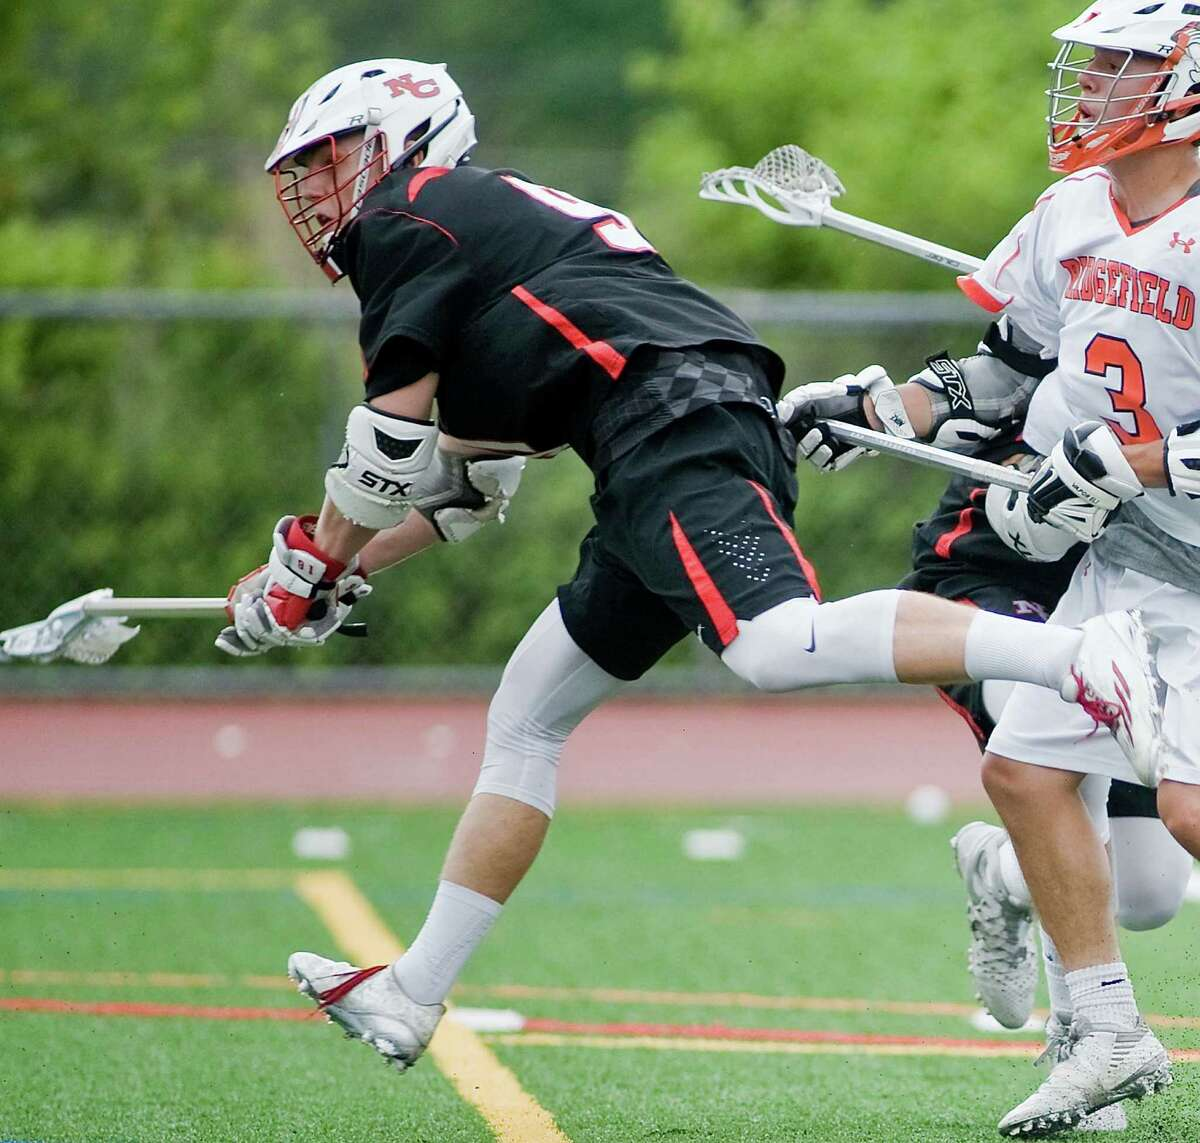 New Canaan High School's David Strupp fires the ball in the FCIAC boys lacrosse semifinal against Ridgefield High School, played at Brien McMahon High School in Norwalk. Tuesday, May 24, 2016